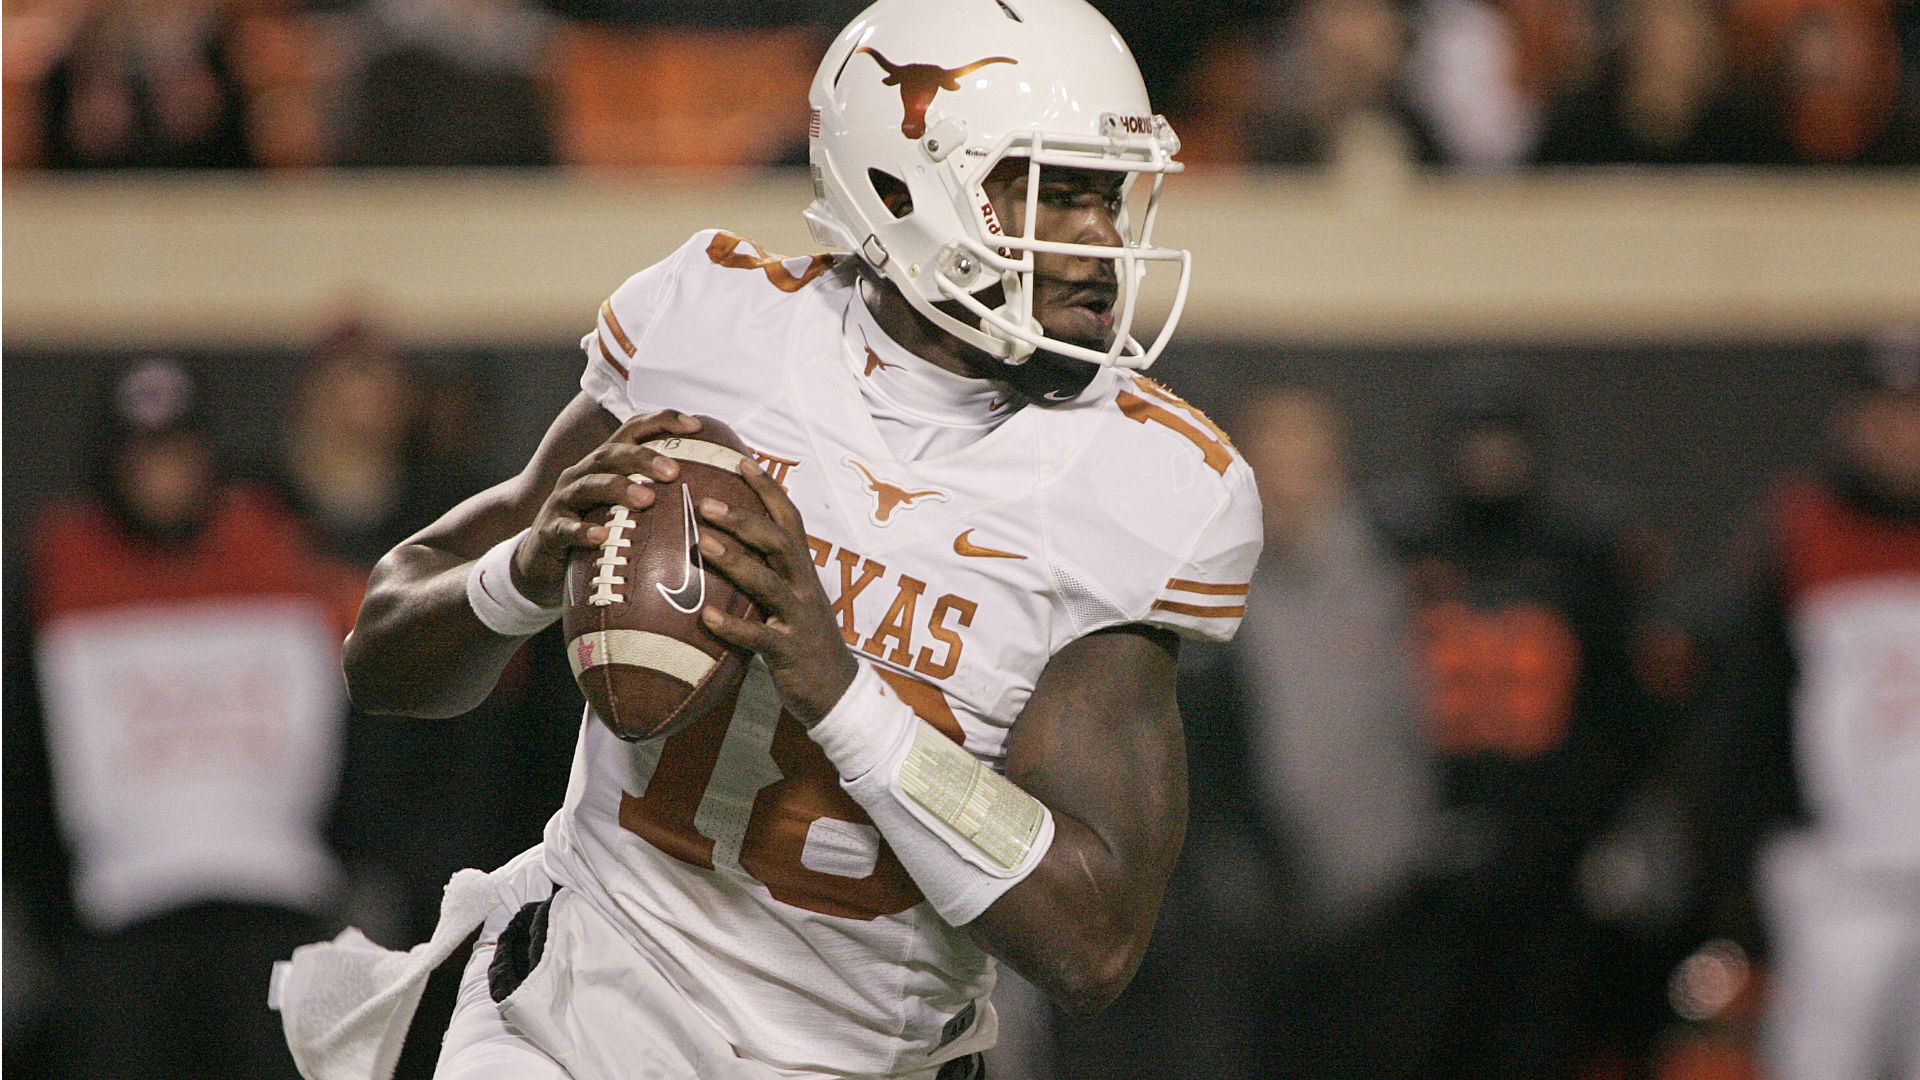 TCU vs. Texas betting preview and pick – Longhorns find late-season mojo